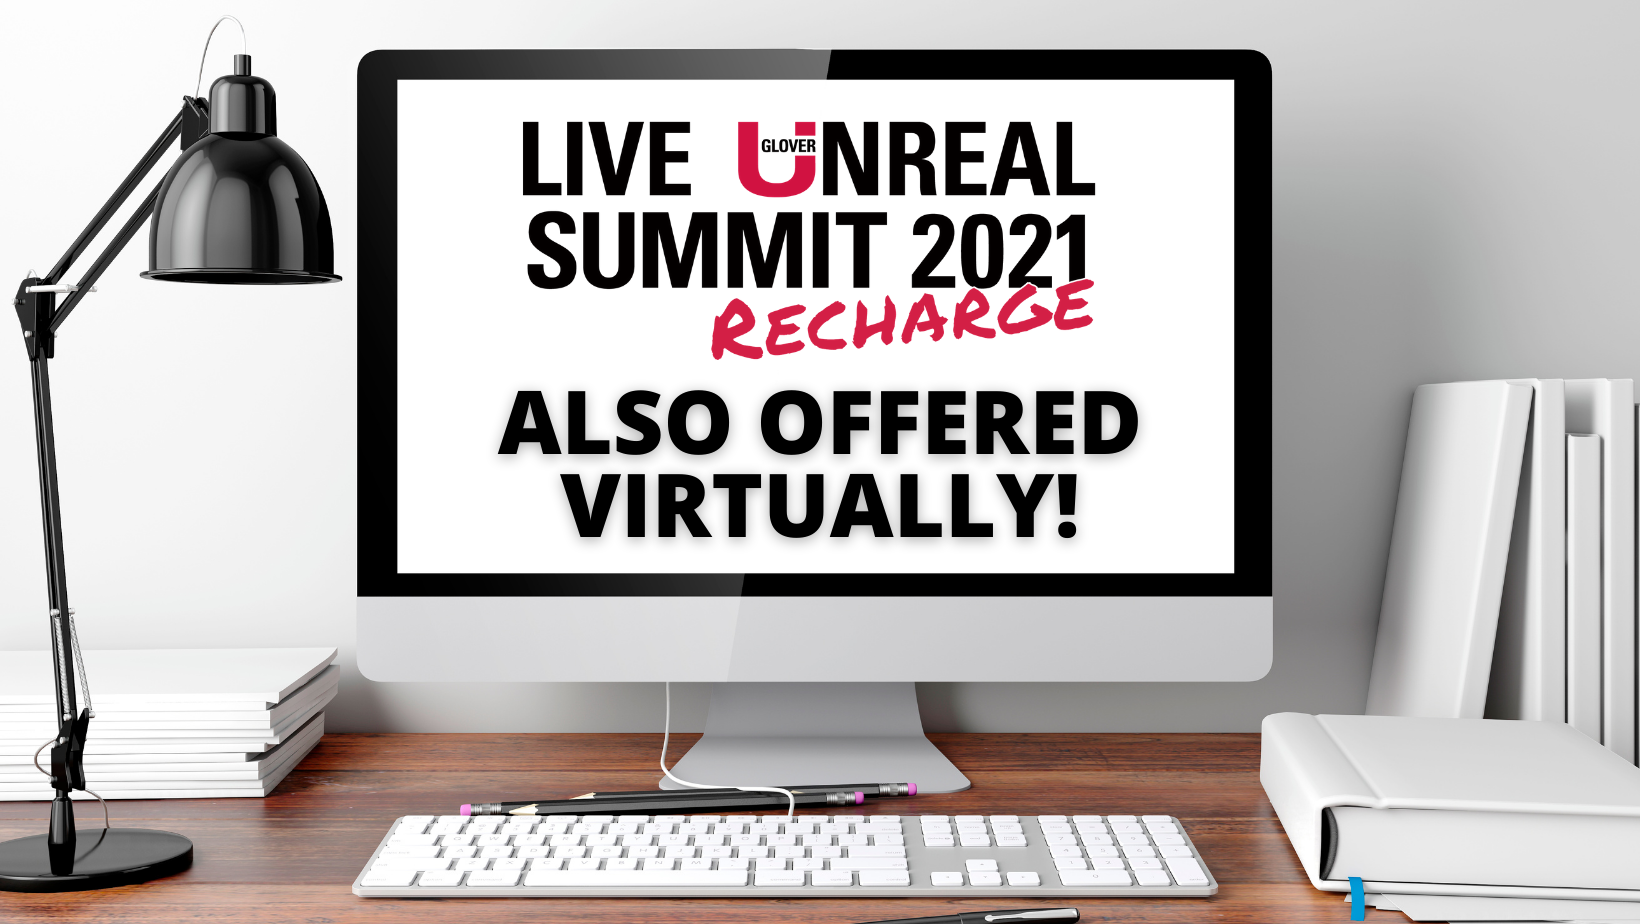 OFFERED VIRTUALLY, TOO.png